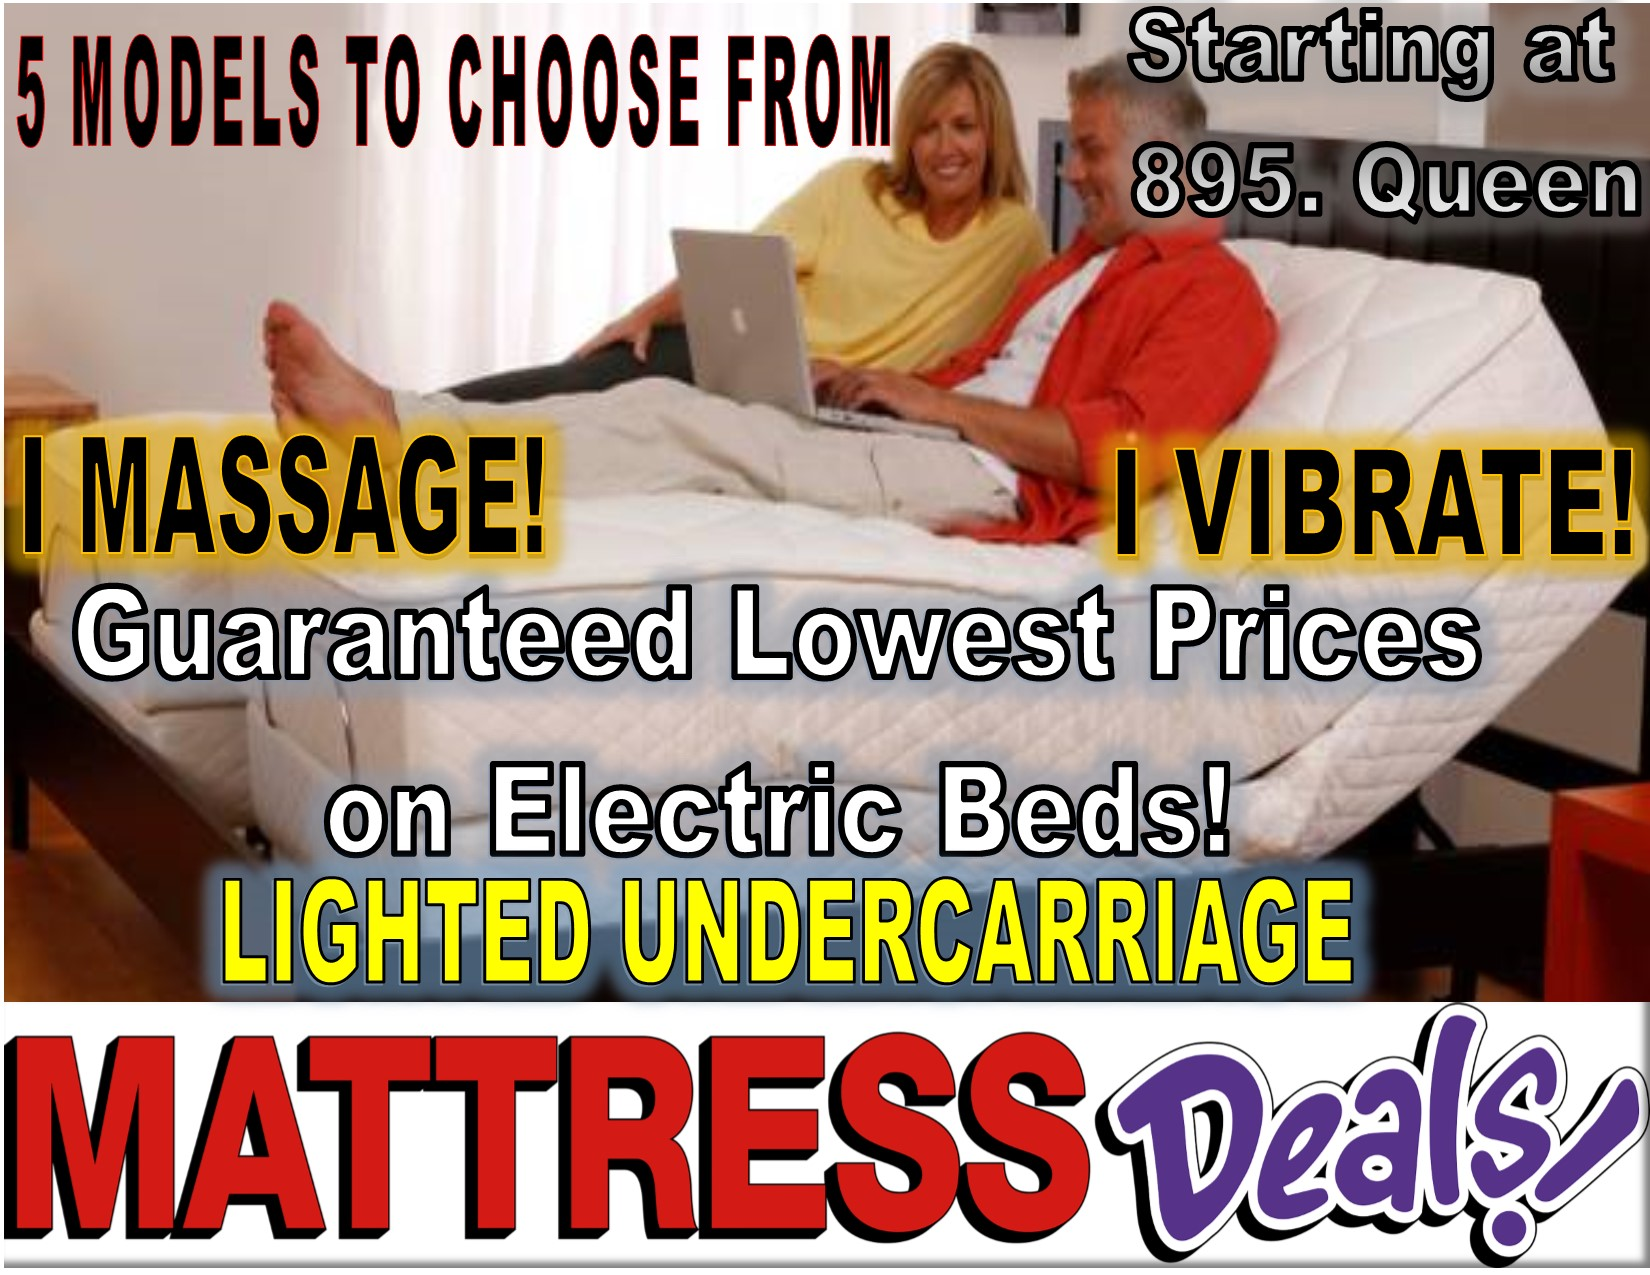 Mattress Deals image 7